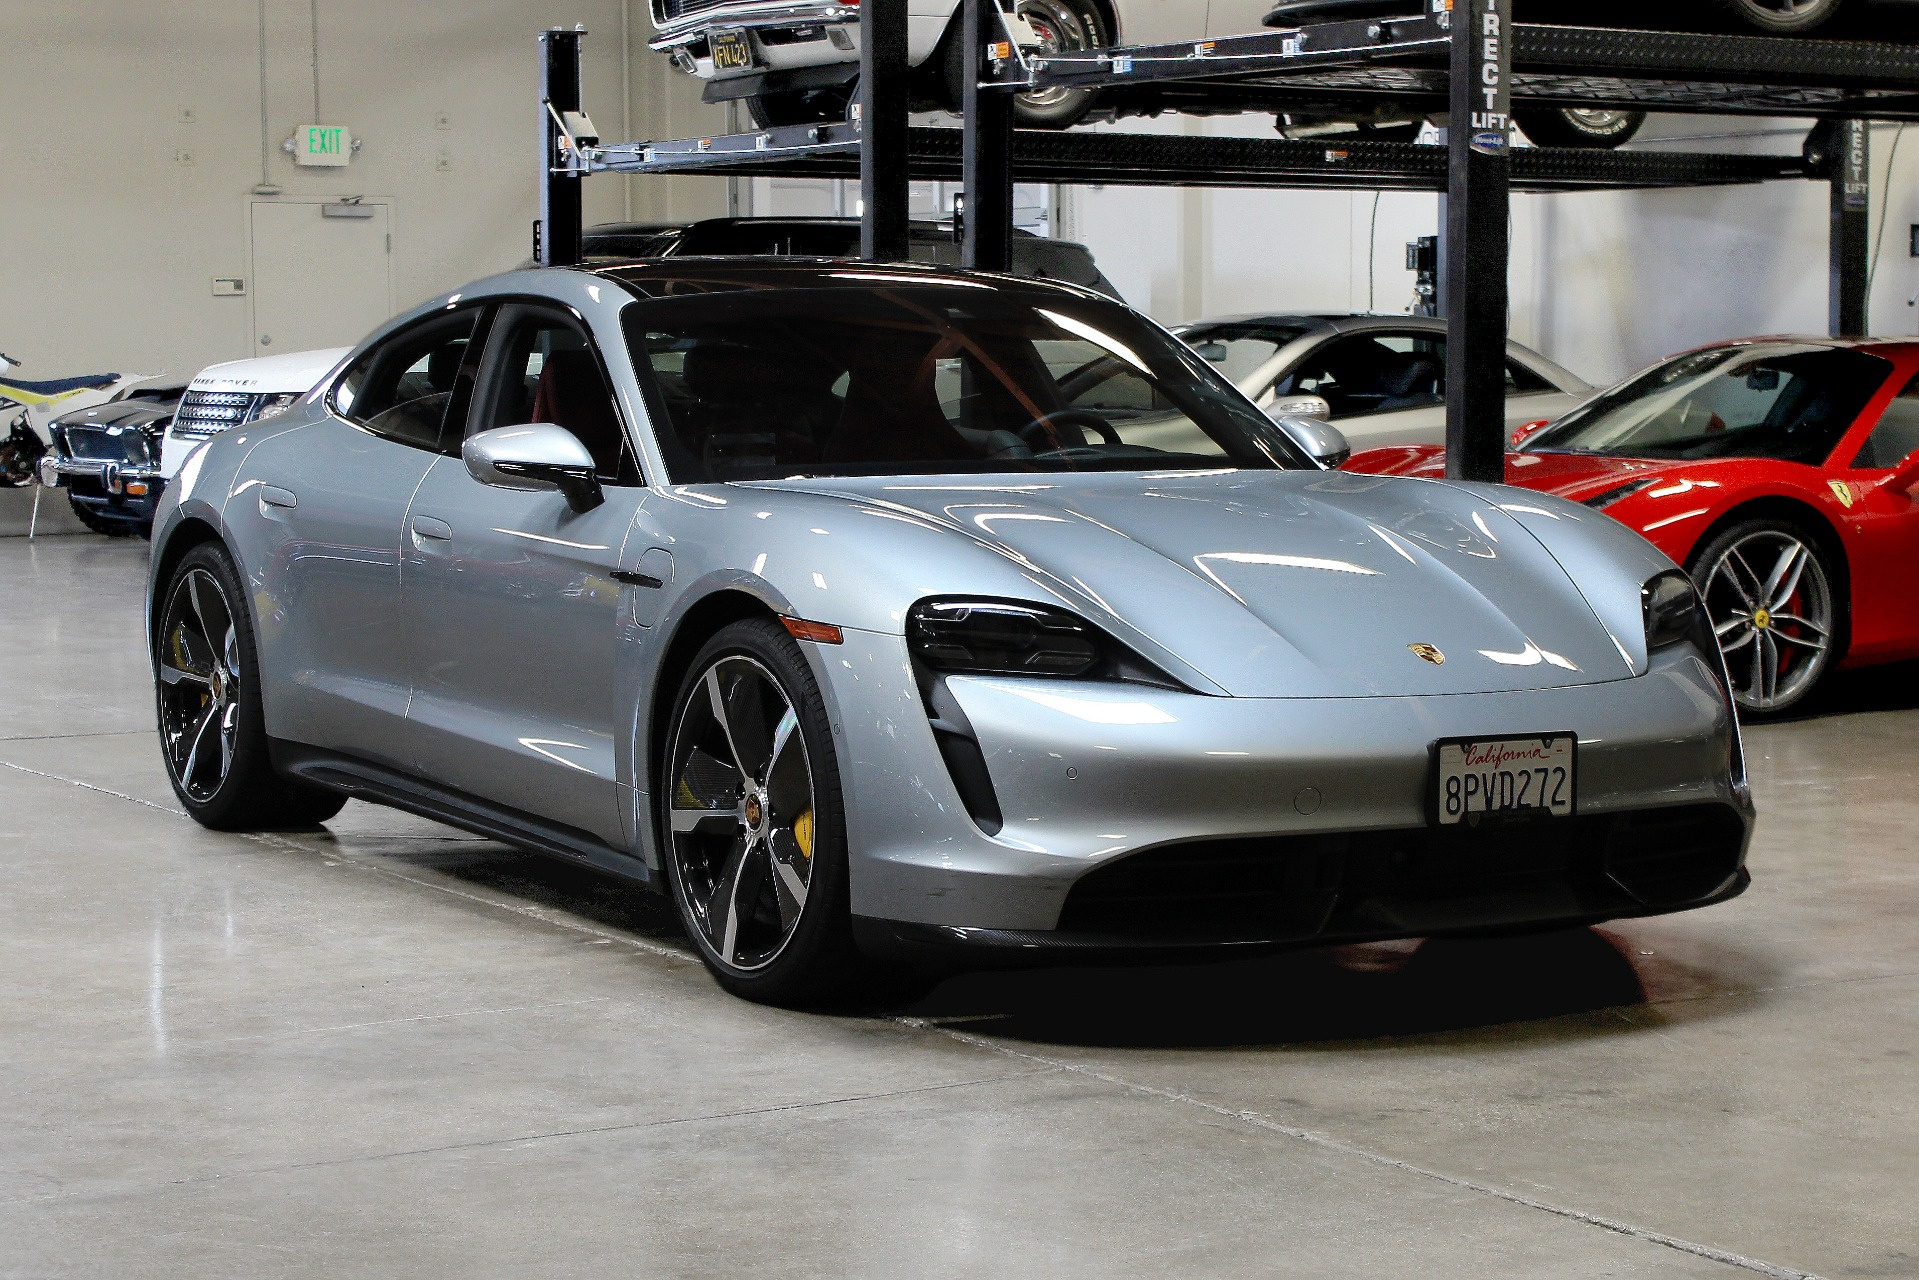 Used 2020 Porsche Taycan Turbo S Turbo S for sale $189,995 at San Francisco Sports Cars in San Carlos CA 94070 1